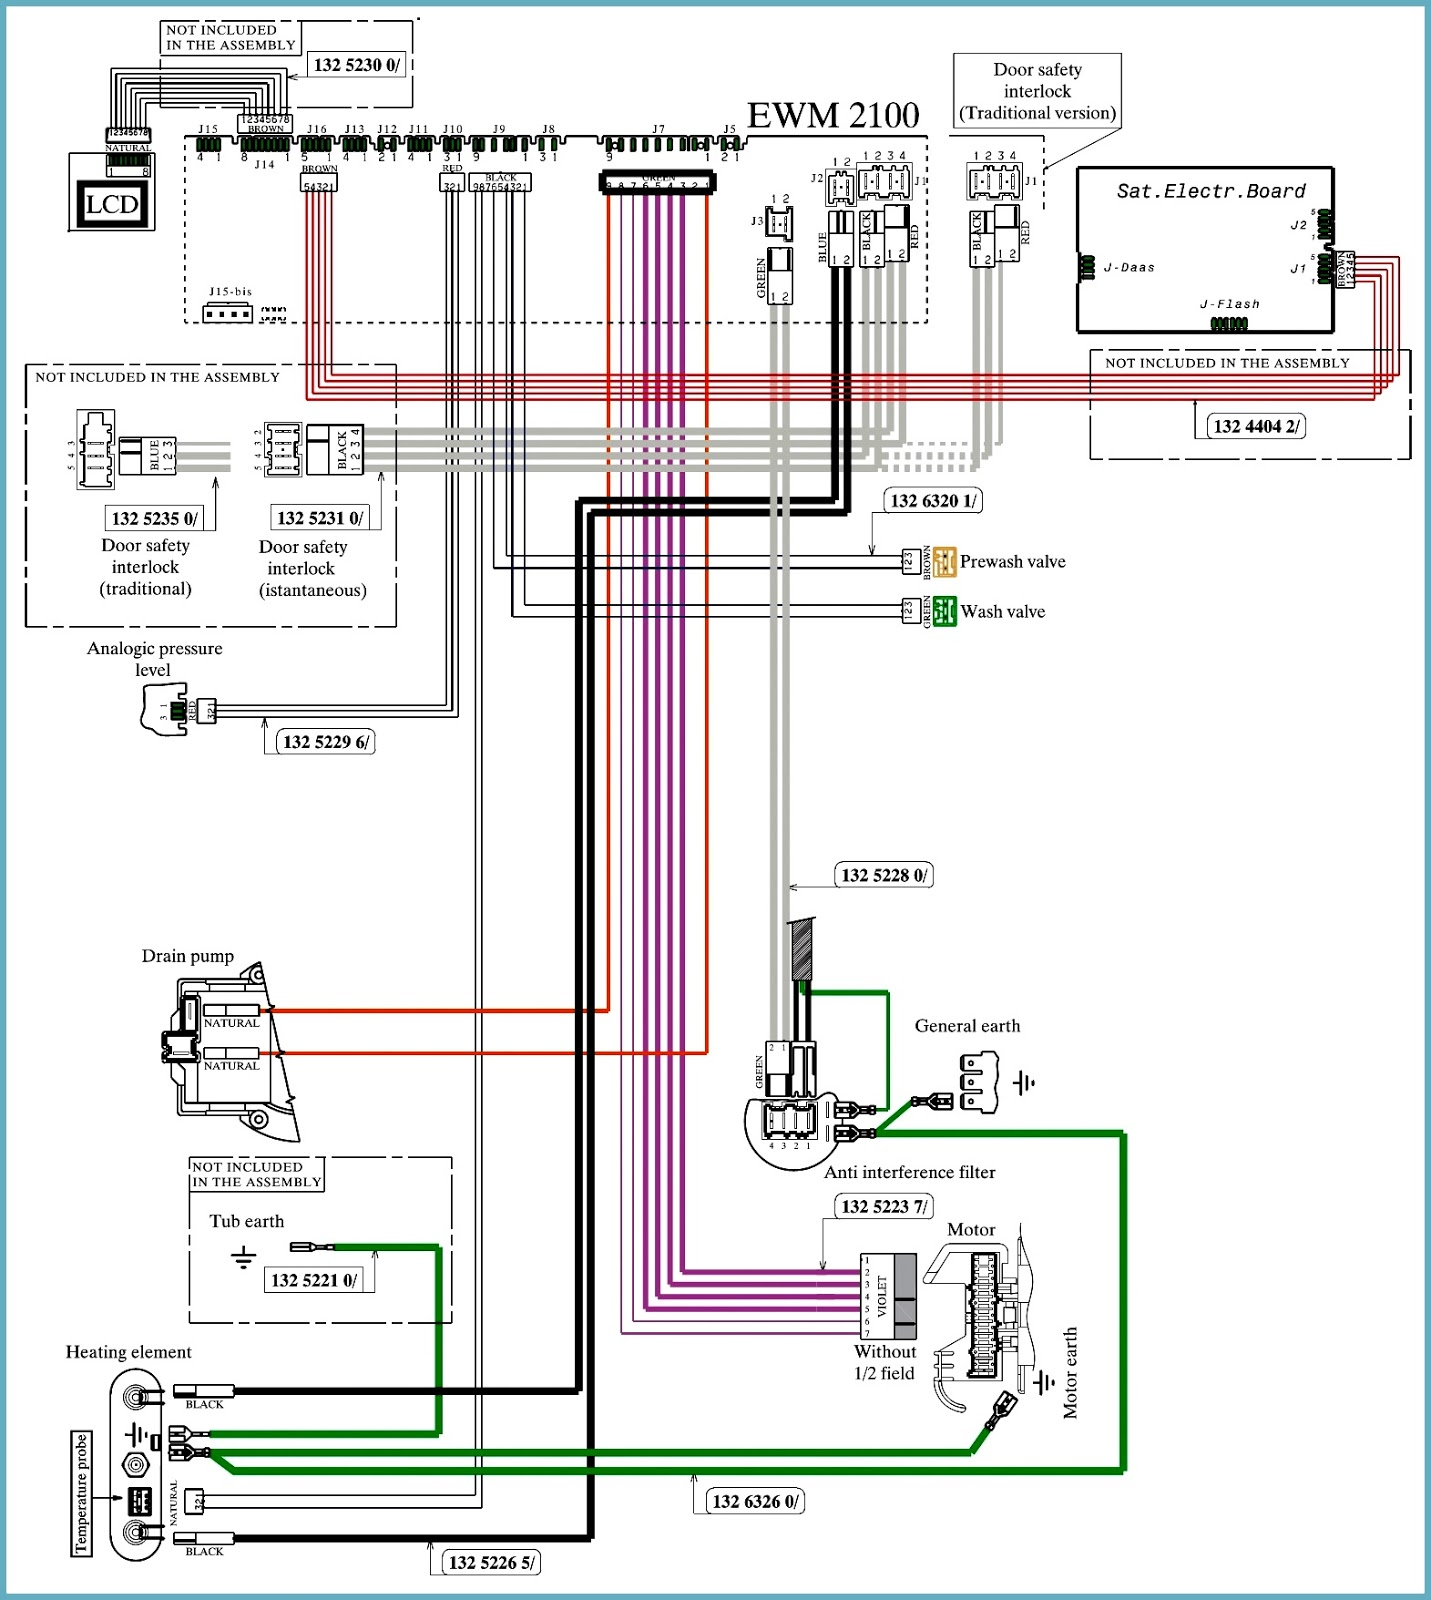 wiring%2Bdiagram ewm2100 ewm2500 env06 electrolux washing machine toploader electrolux wiring diagram at creativeand.co